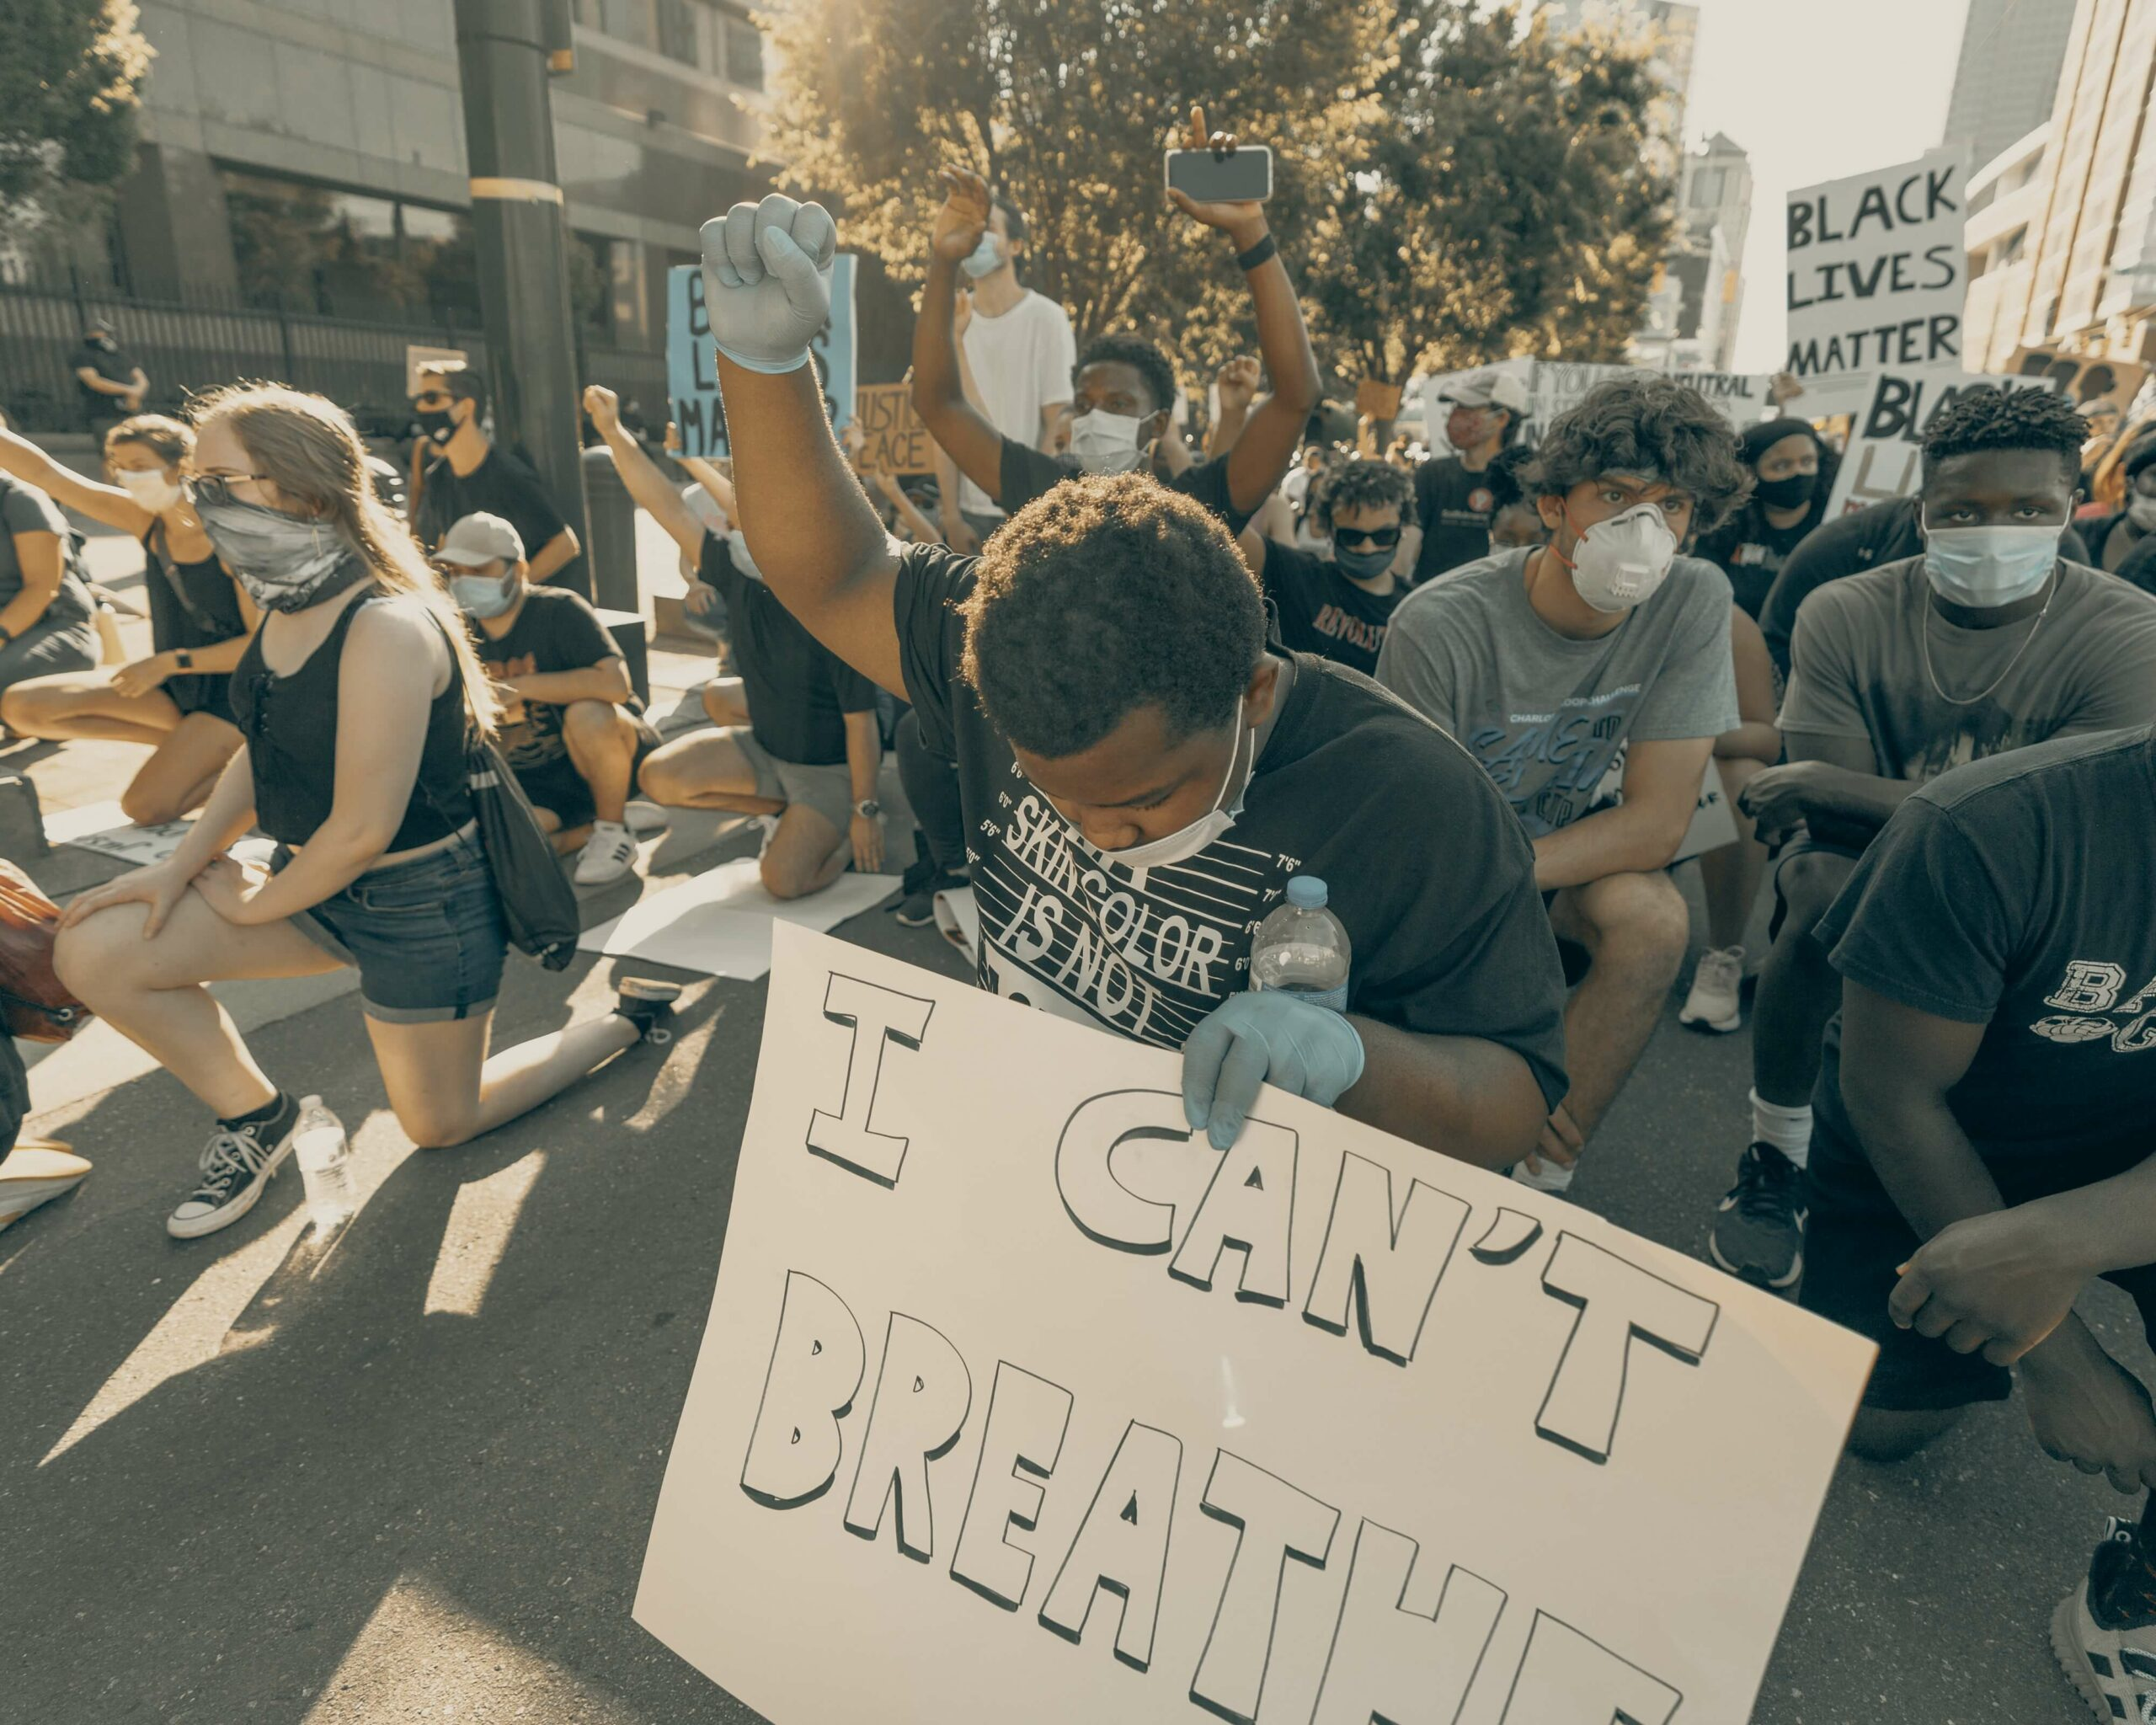 Protestor holding up his fist in solidarity; photo by clay banks